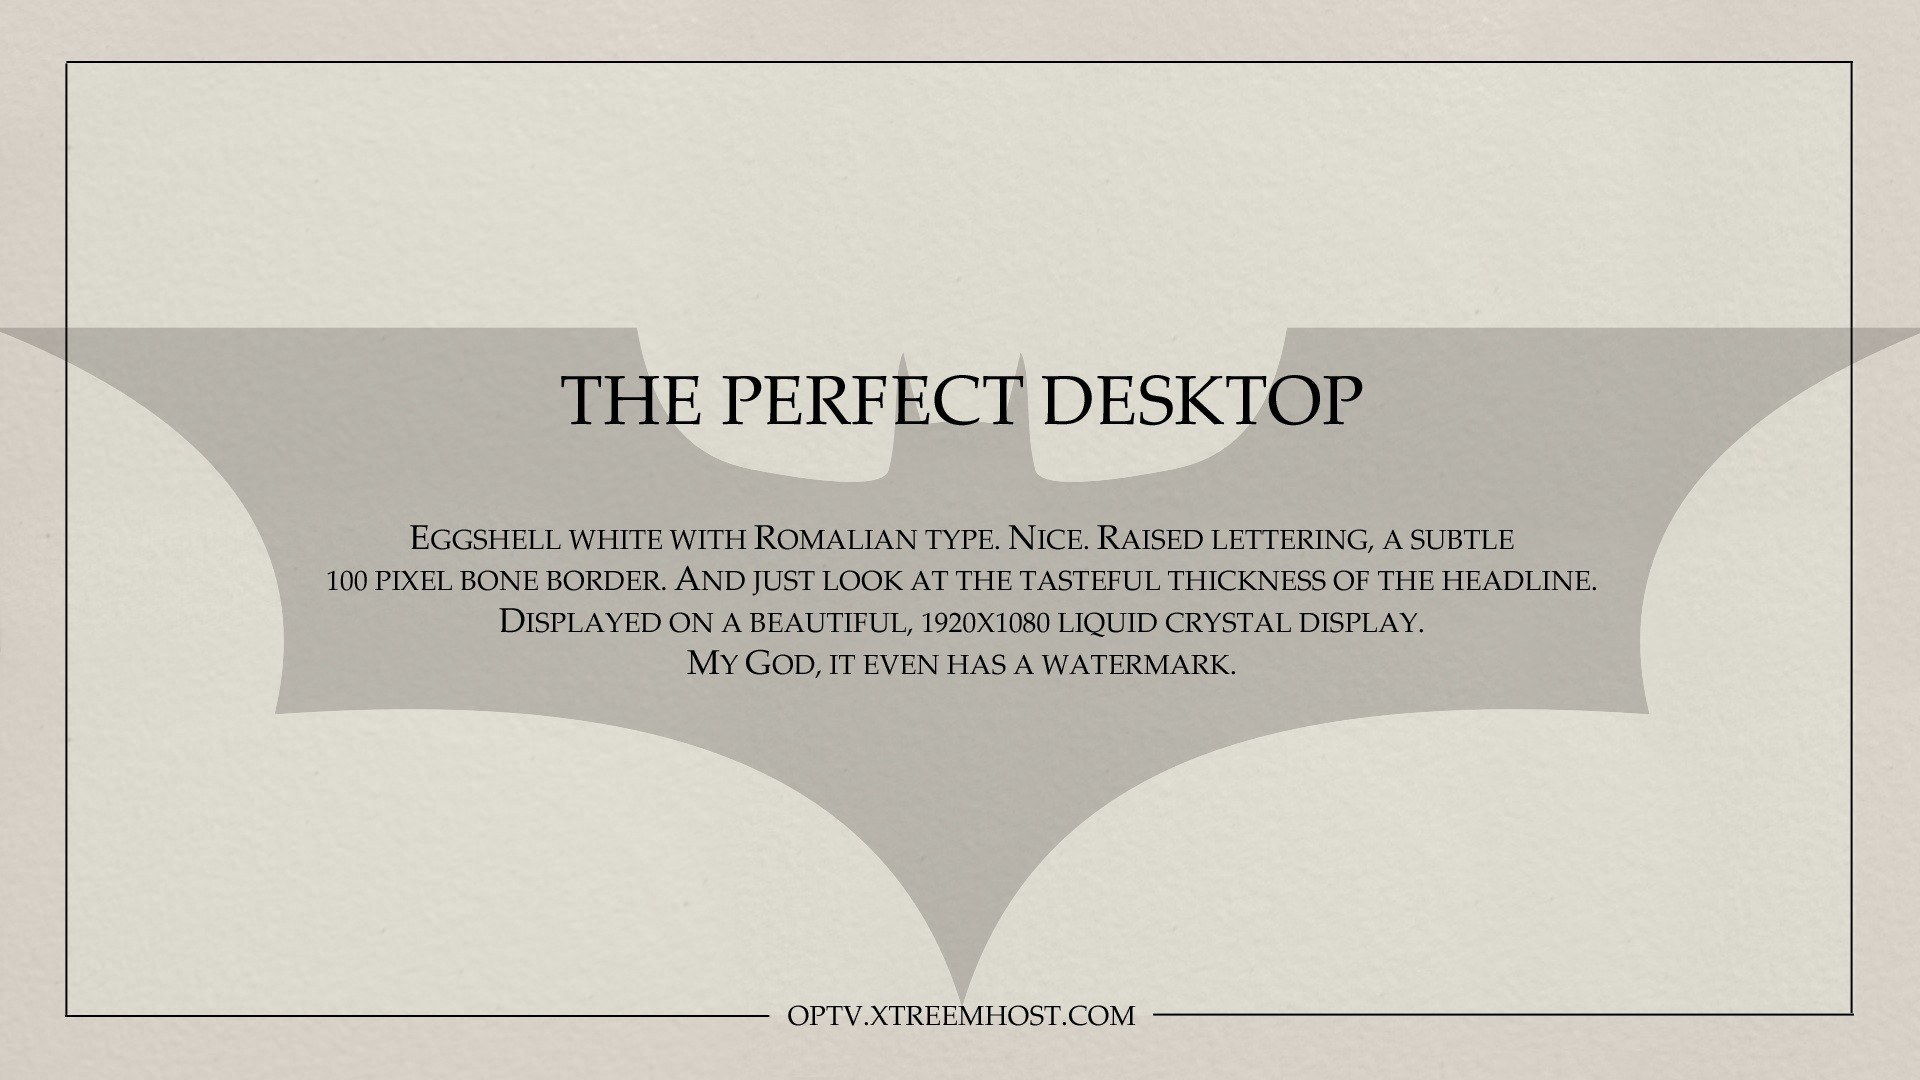 Achievement Quotes Hd Wallpaper Batman Batman Logo American Psycho Wallpapers Hd